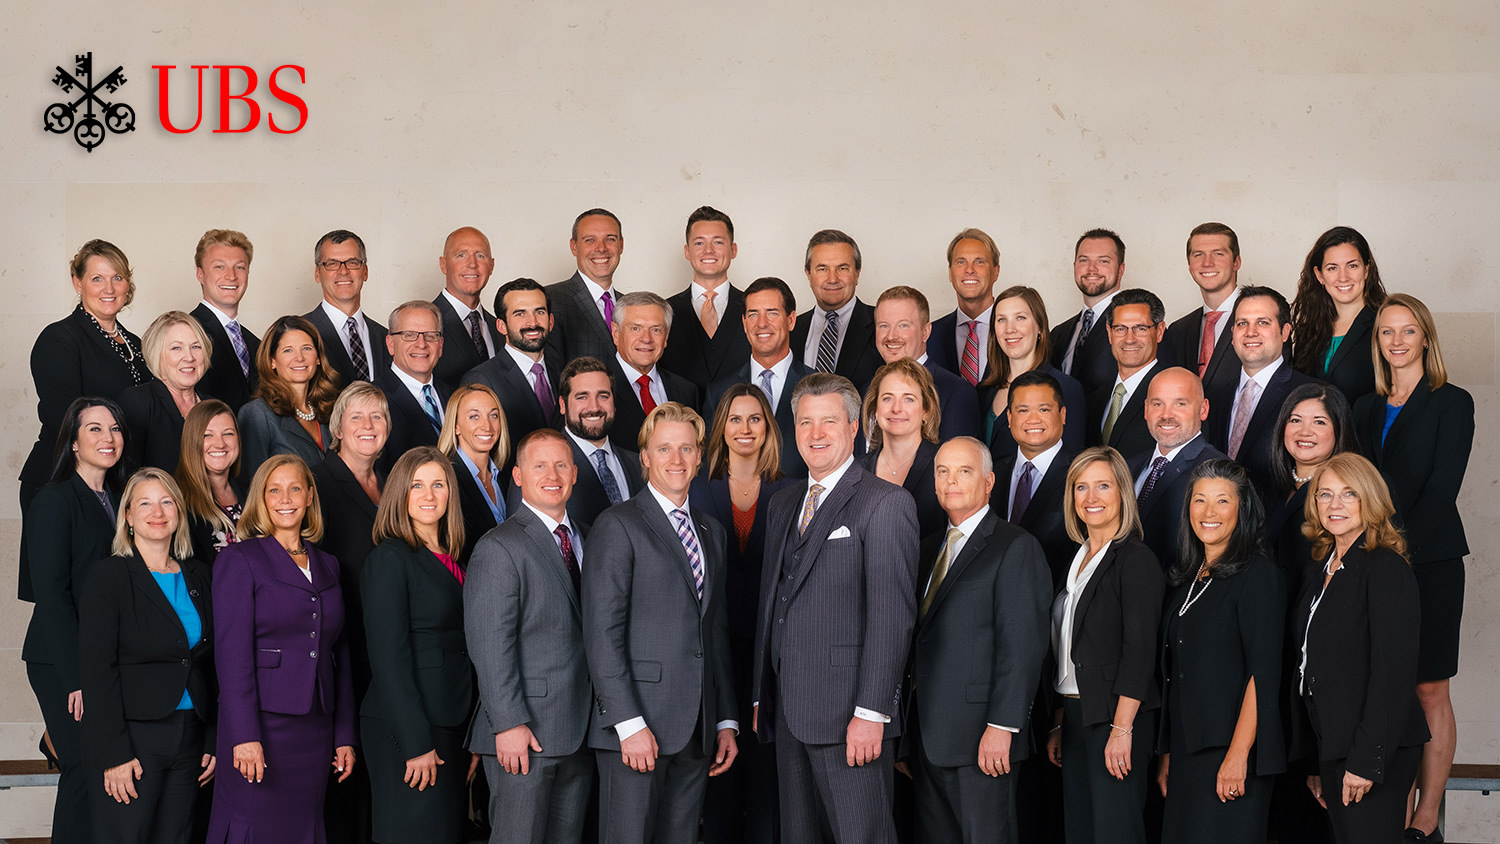 UBS Madison Wisconsin business team photo in Overture Center for the Arts